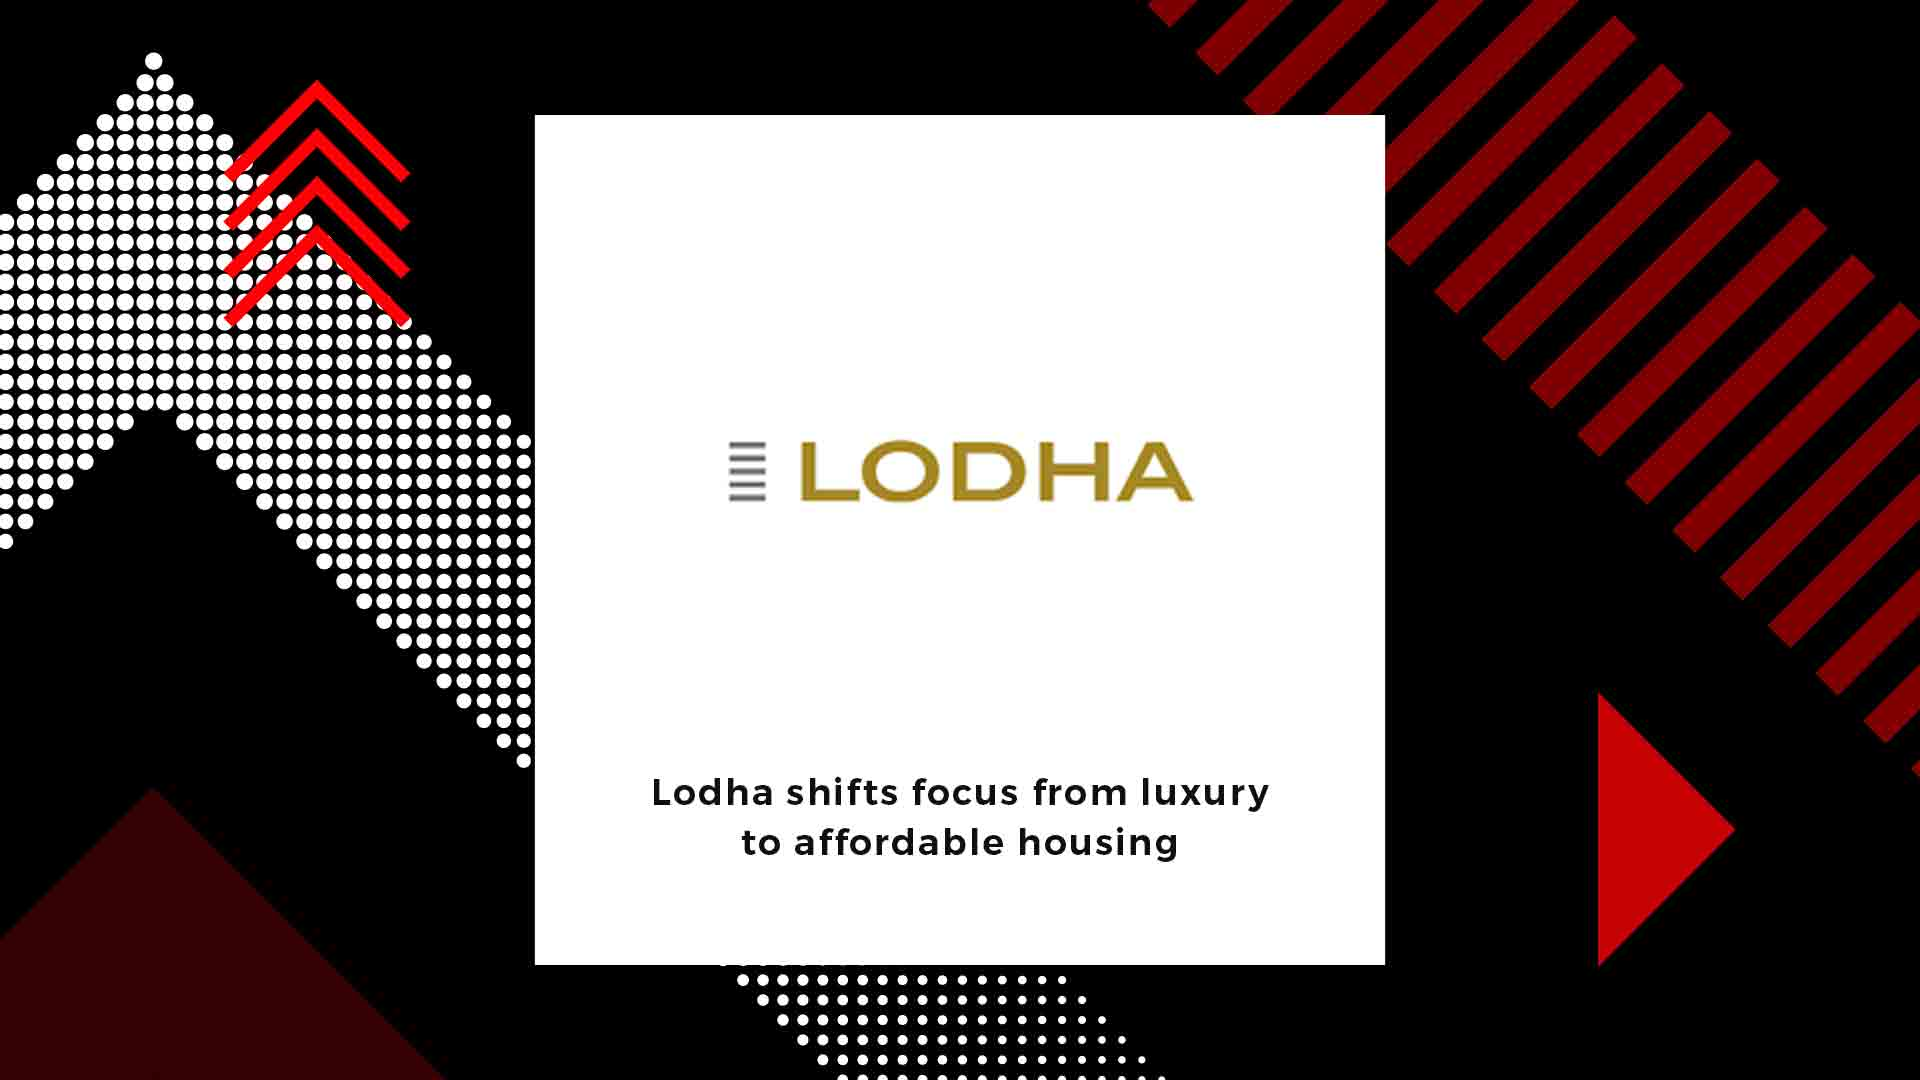 Lodha Developers shifts focus from luxury to affordable housing